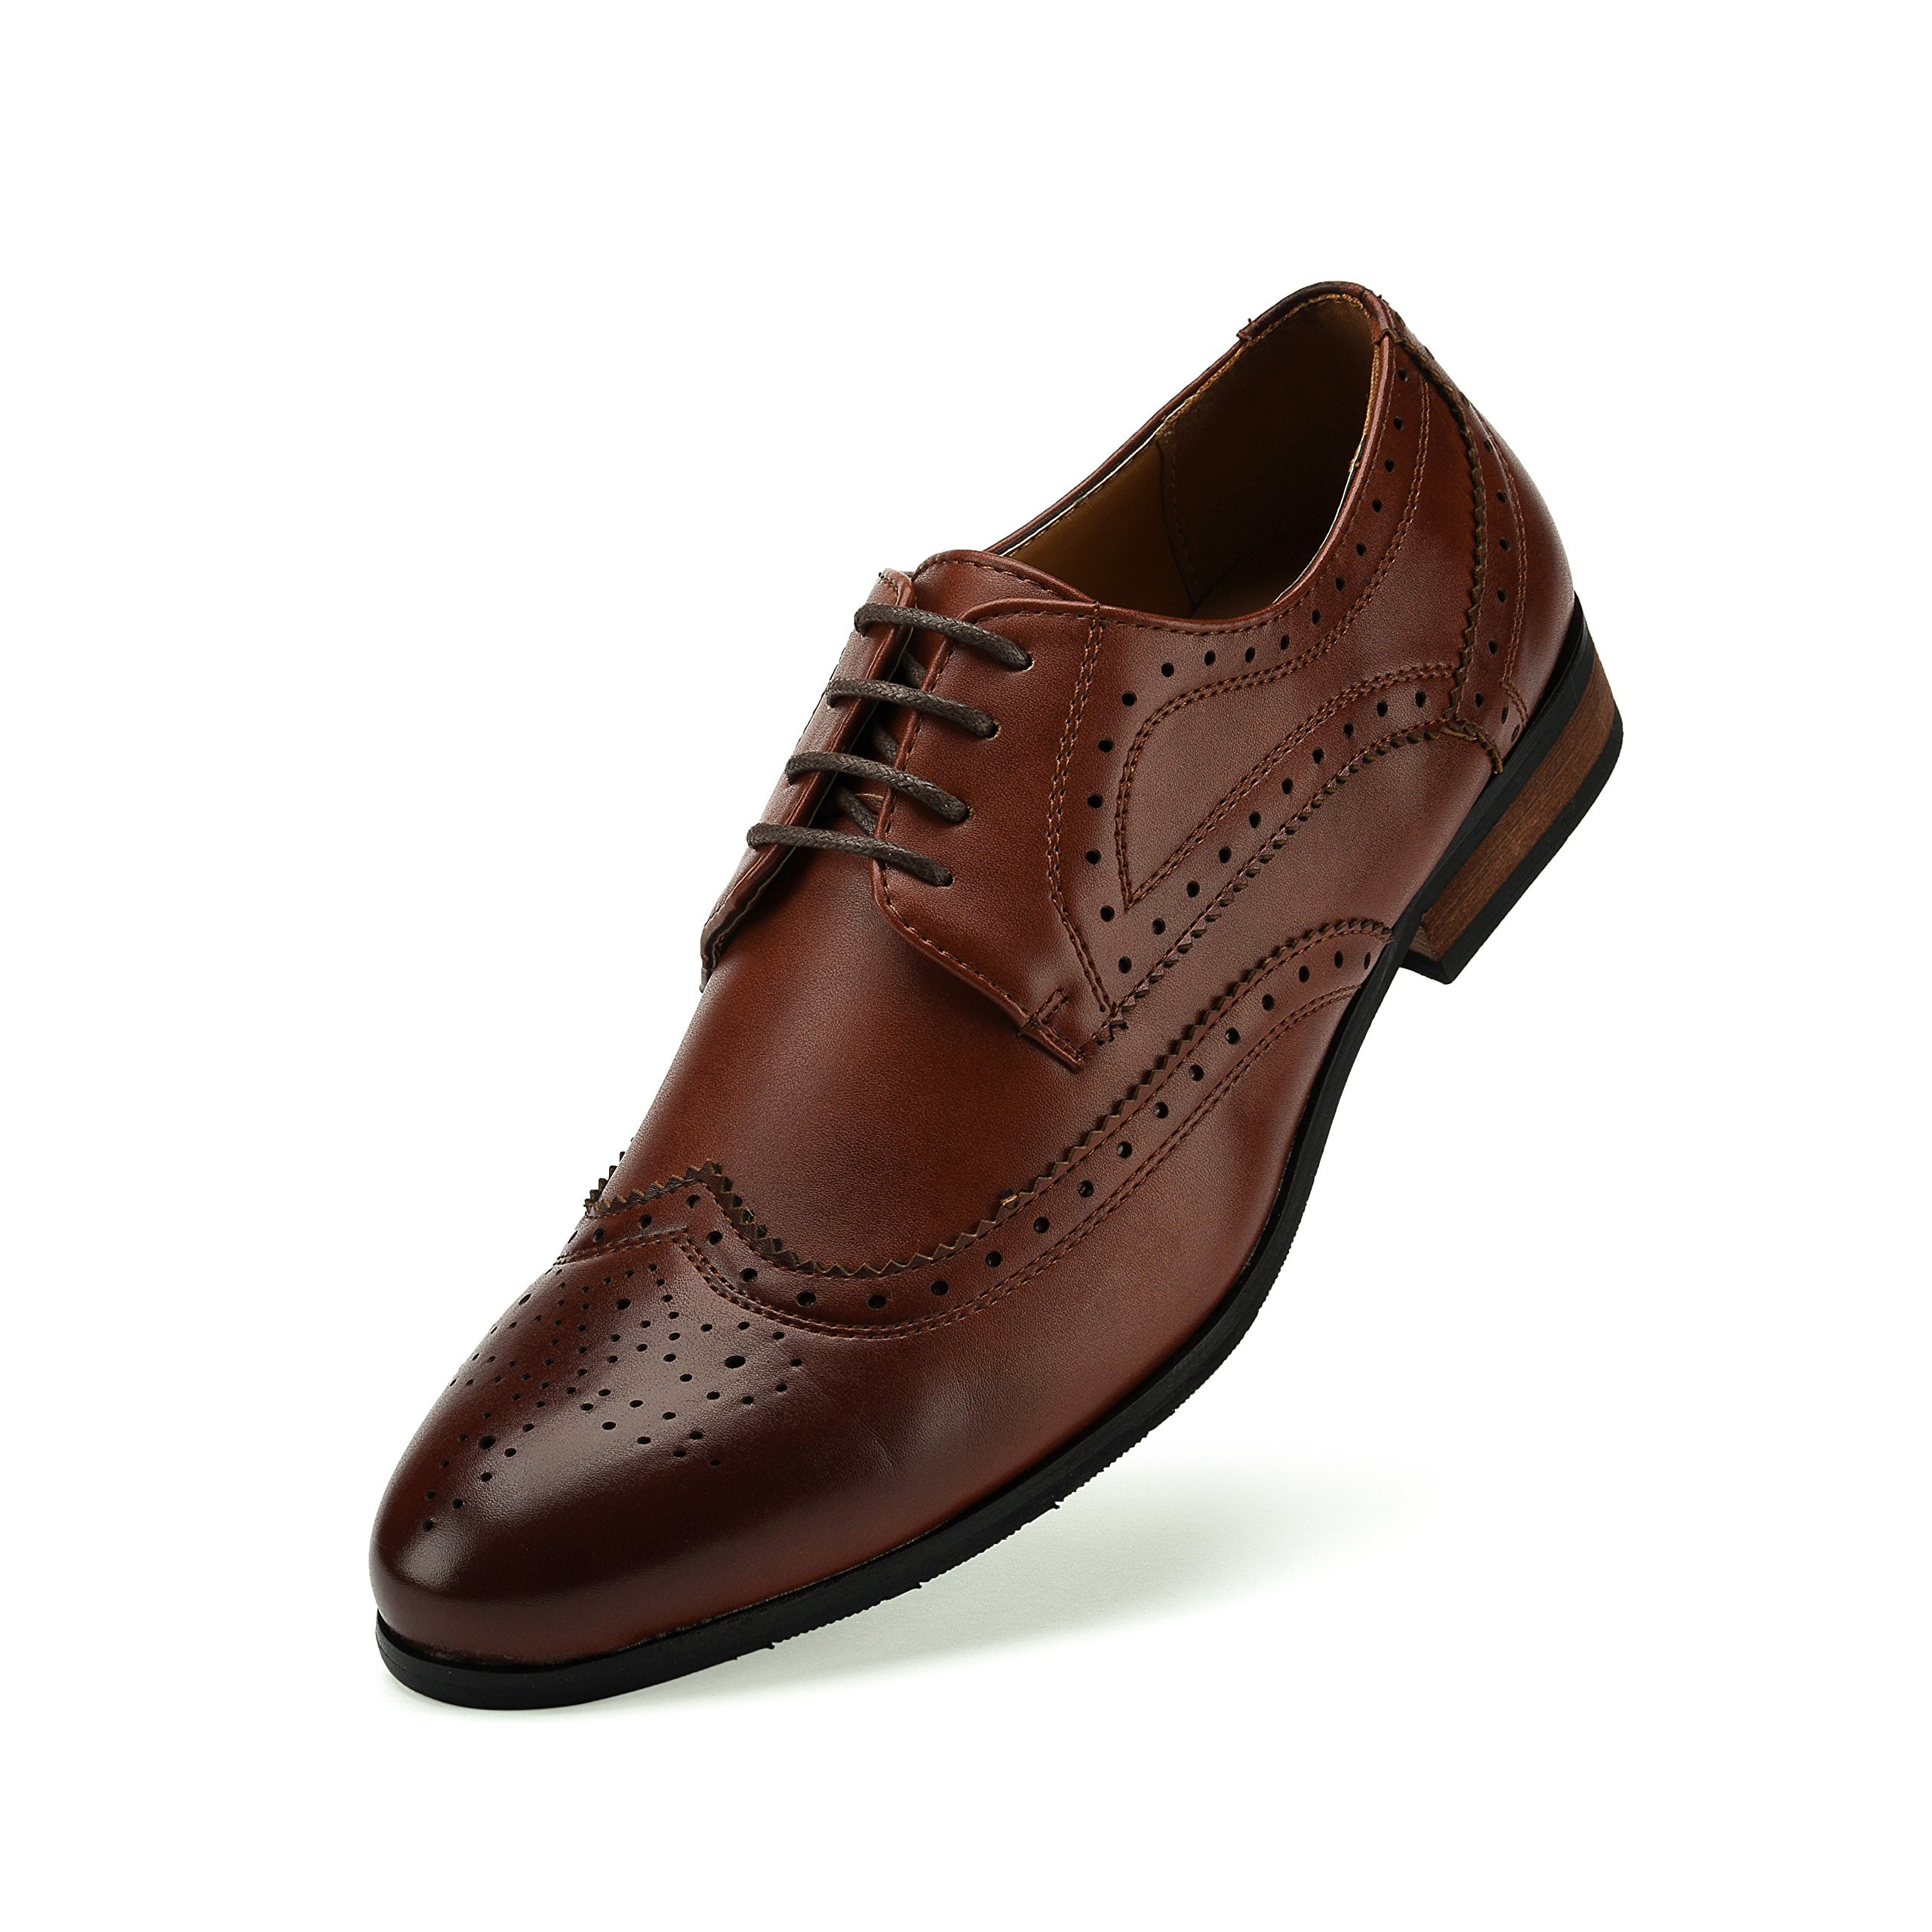 Fine Detail Wingtip Oxford Shoe